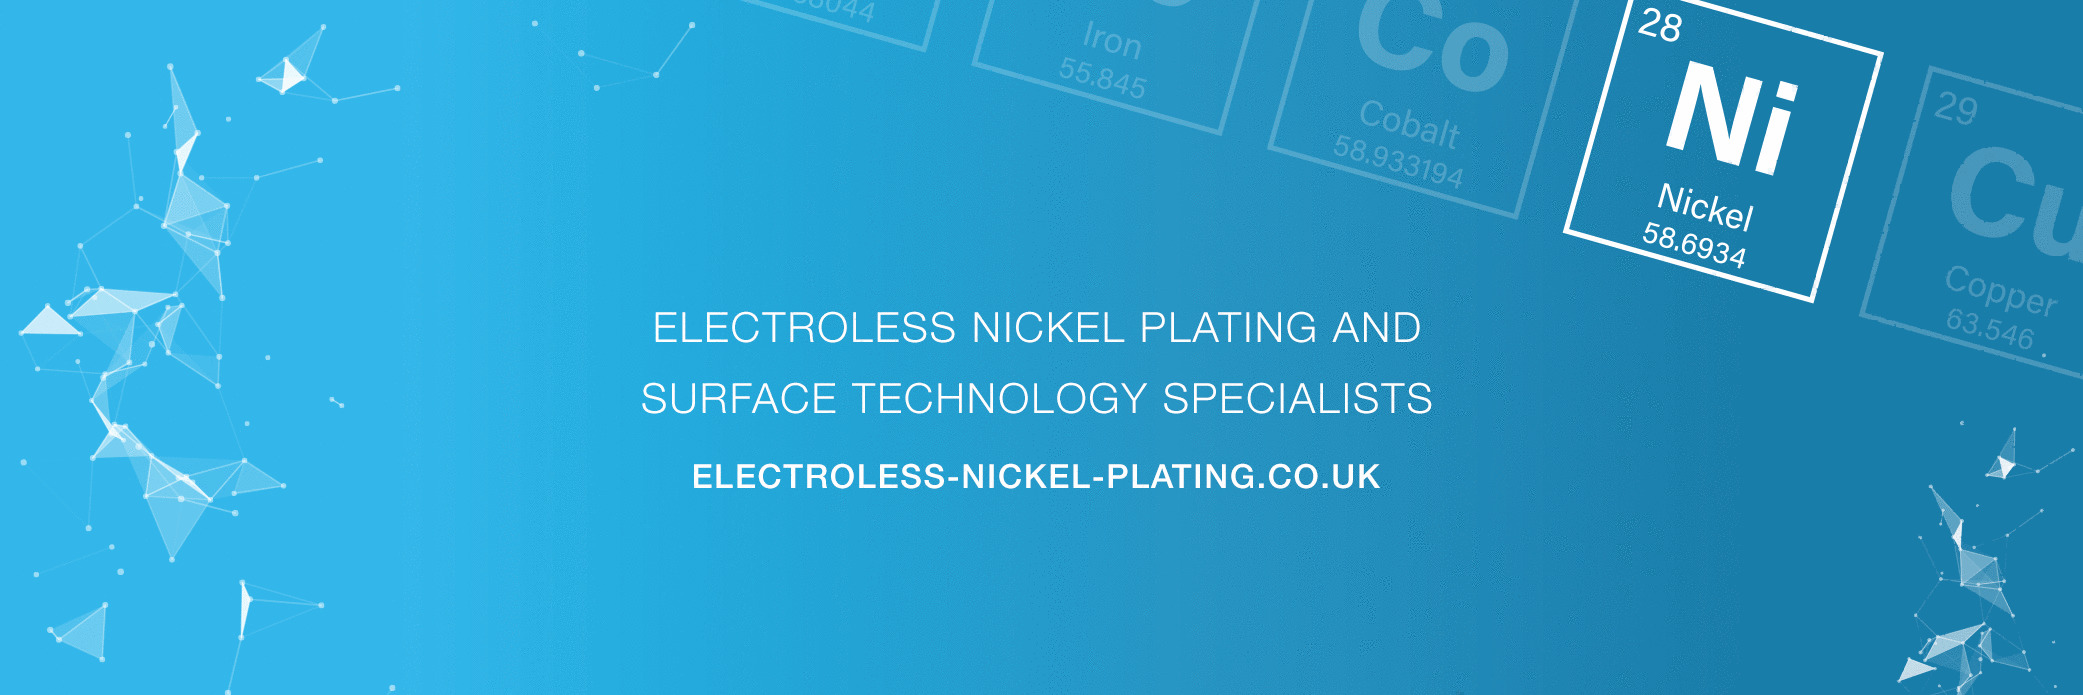 CBE+ Electroless Nickel | LinkedIn